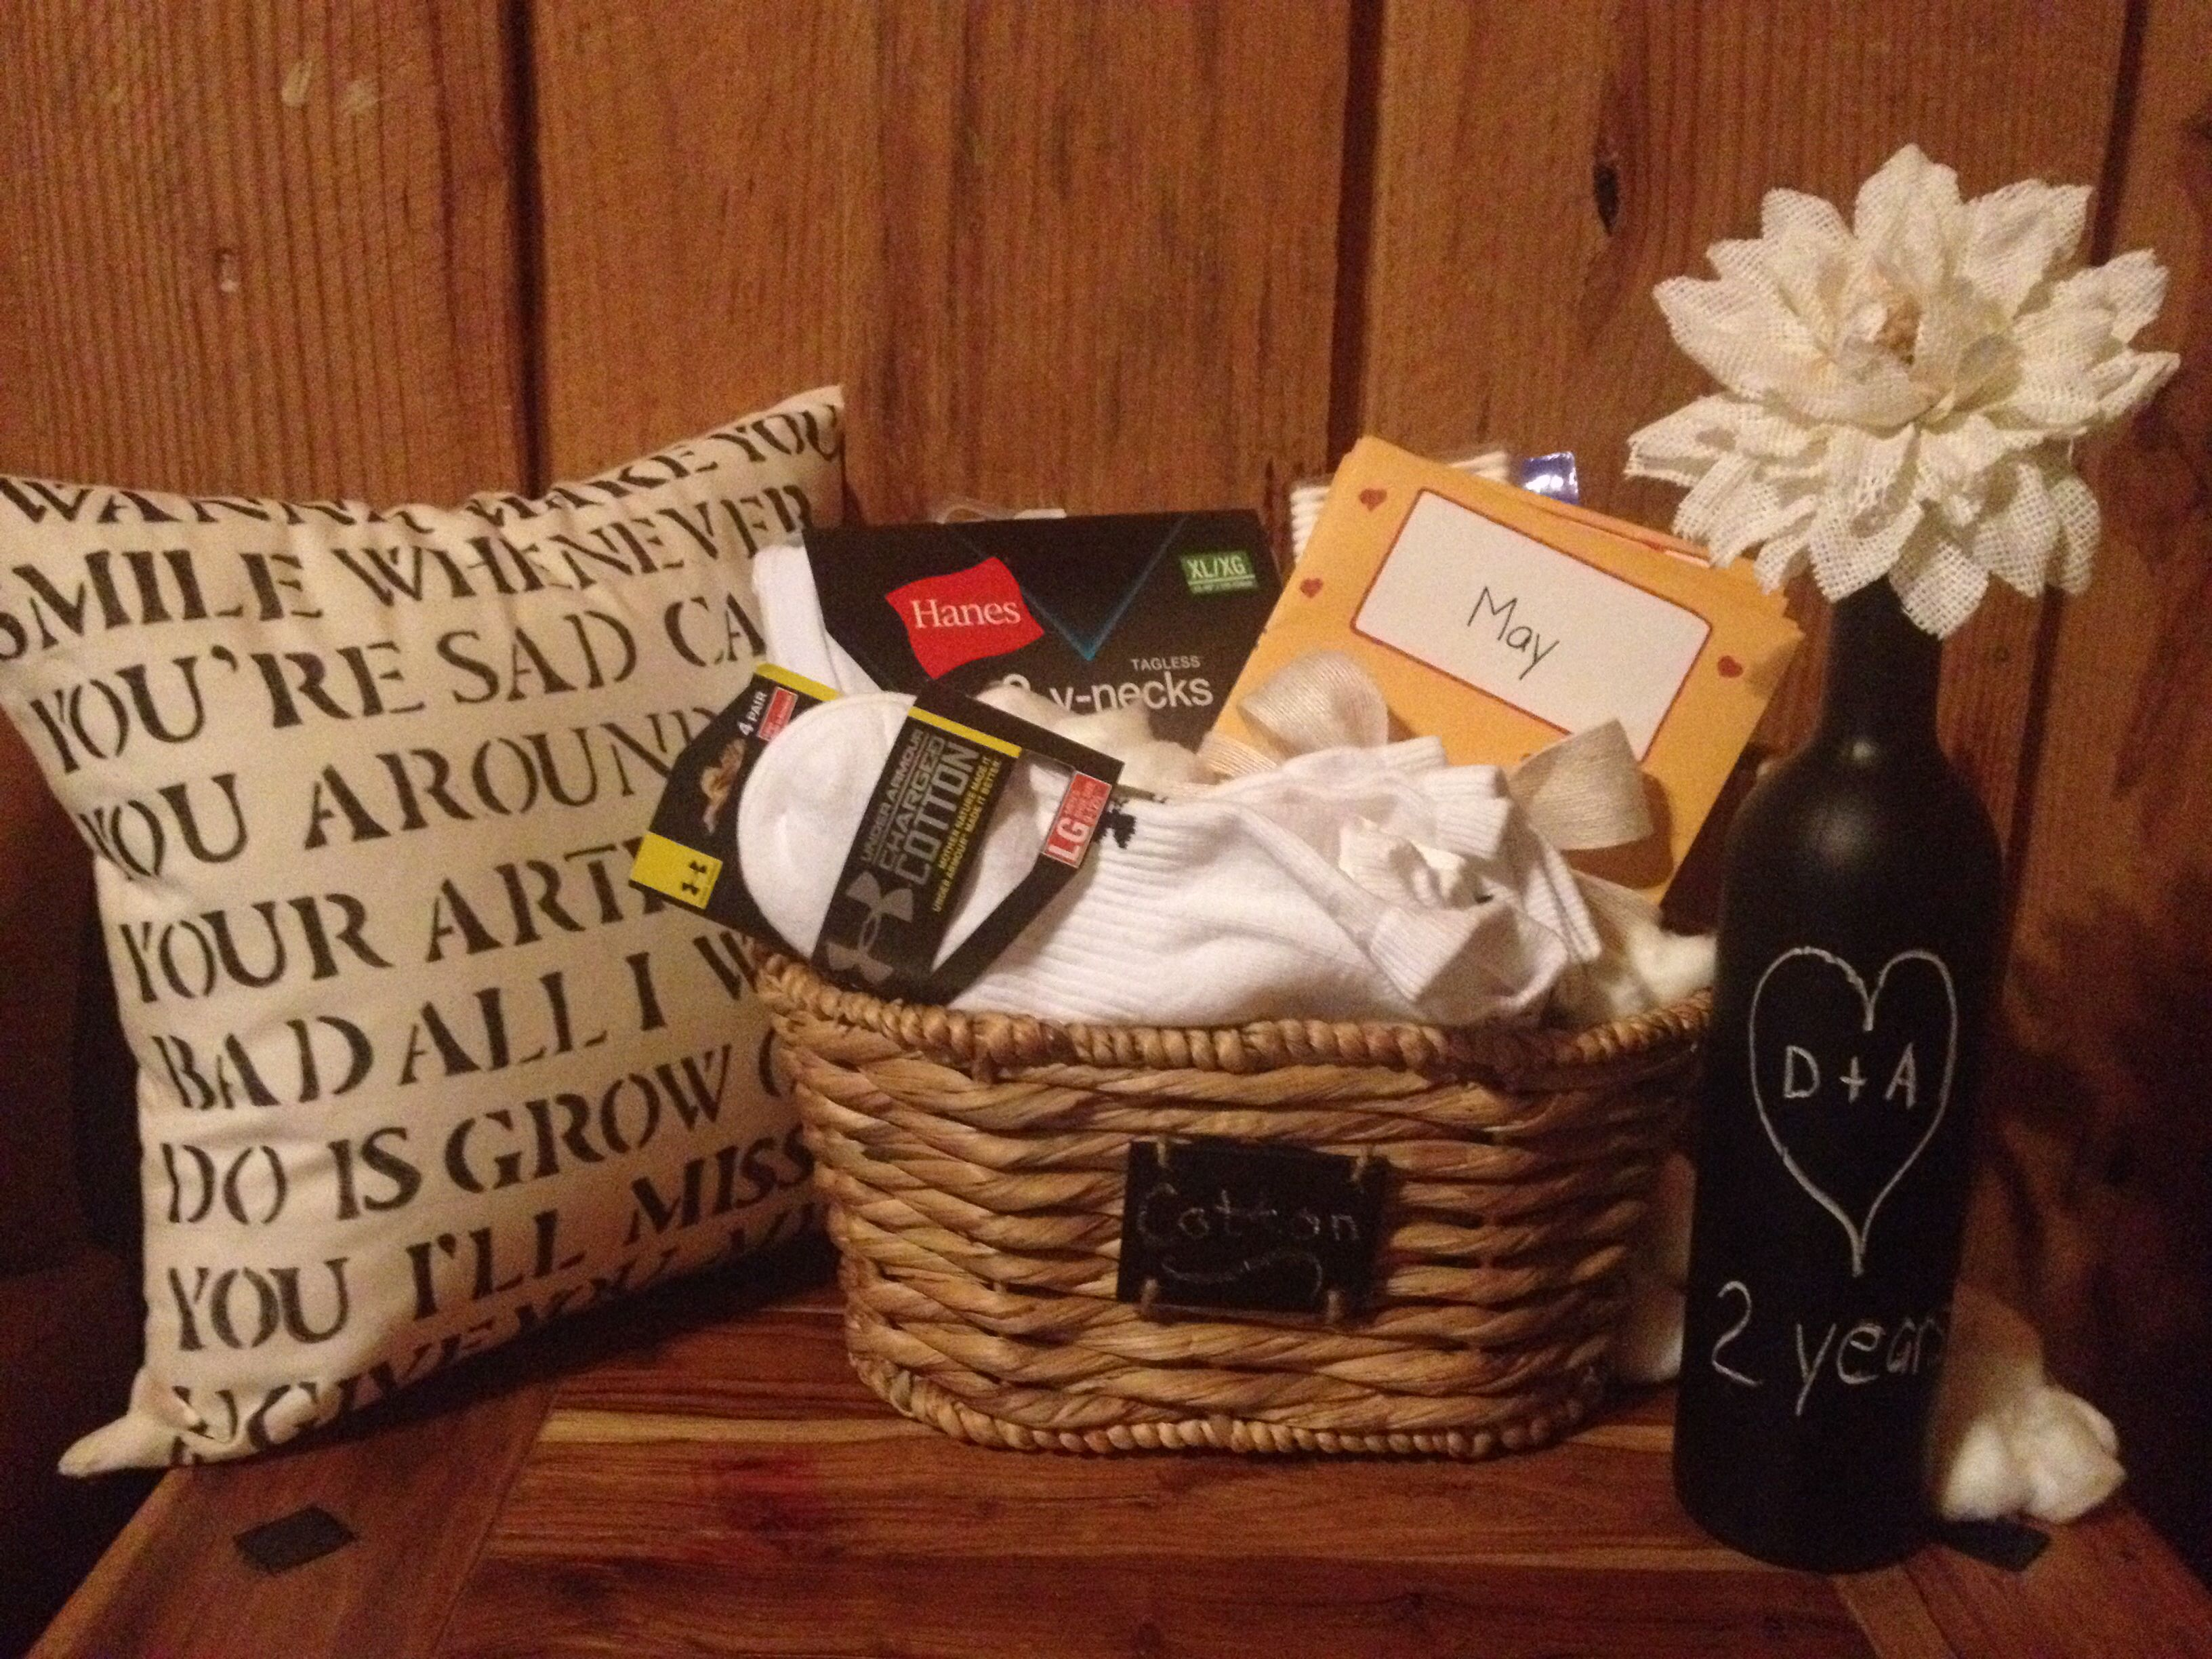 Cotton Wedding Anniversary Gifts For Him: Cotton Anniversary Gift Basket! T-shirts, Socks, Cotton